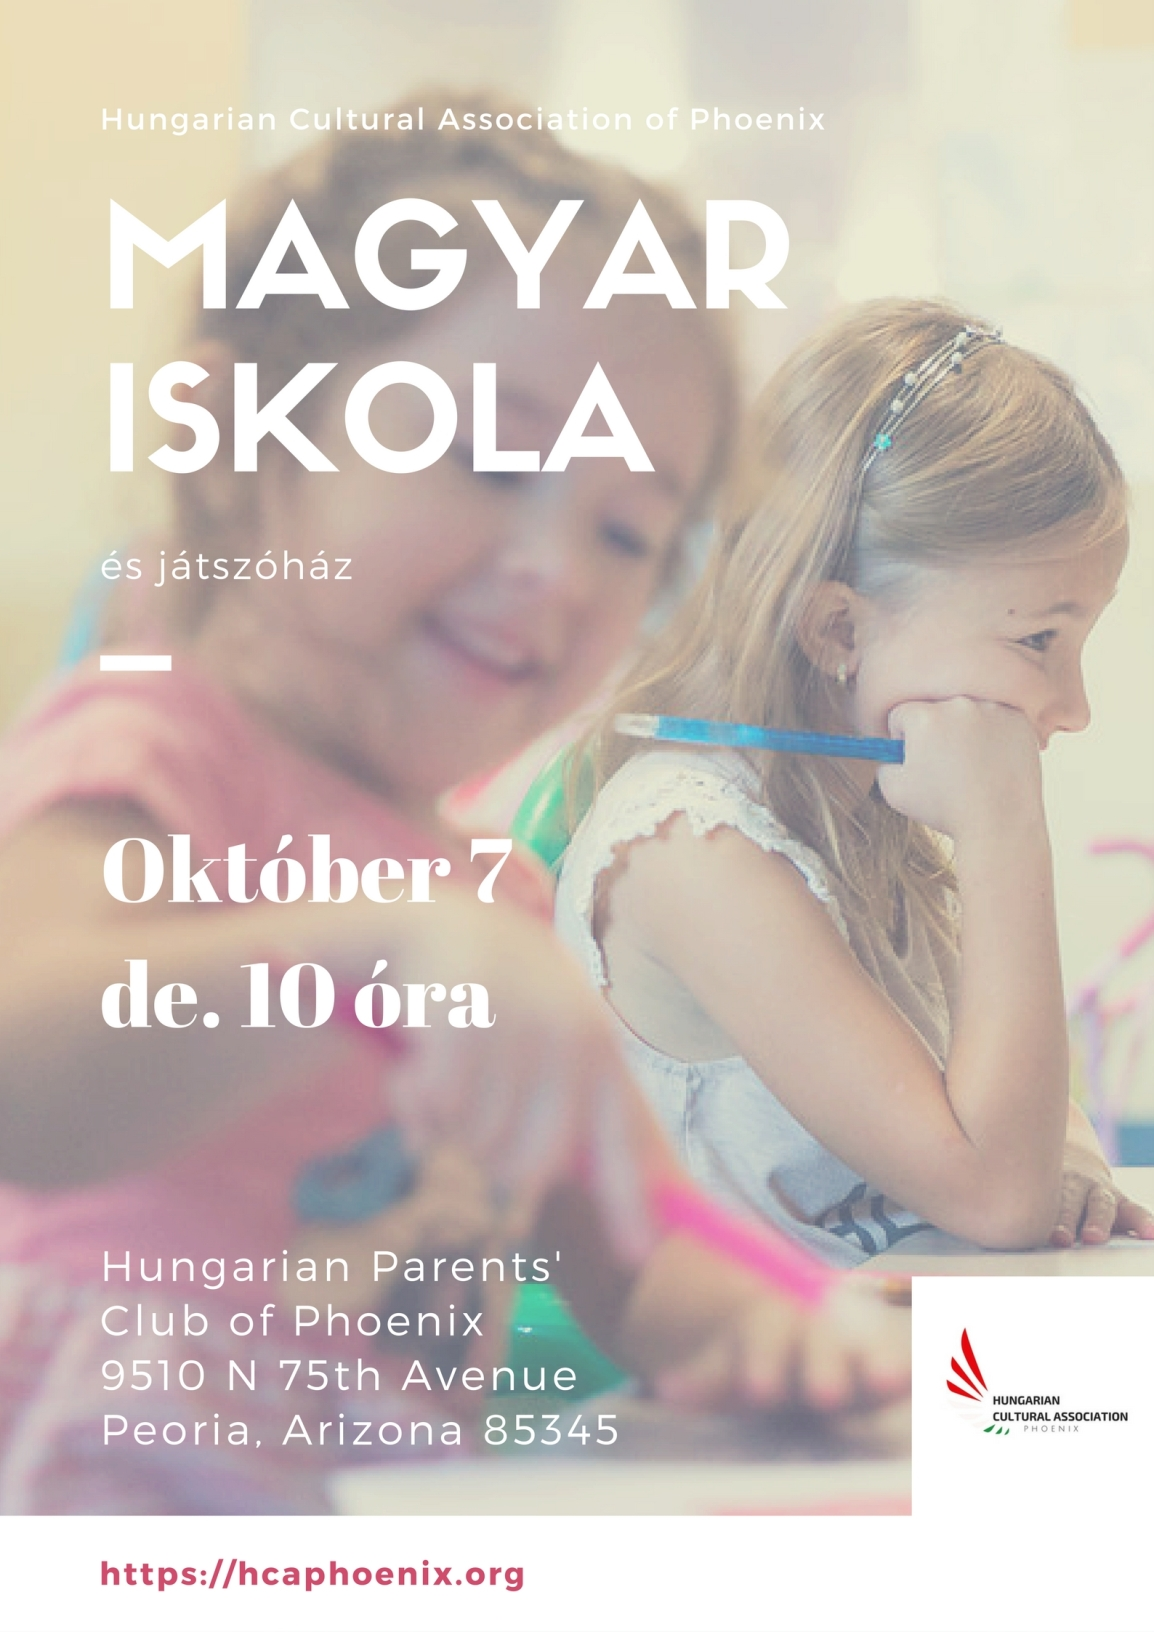 Hungarian Cultural Association of Phoenix